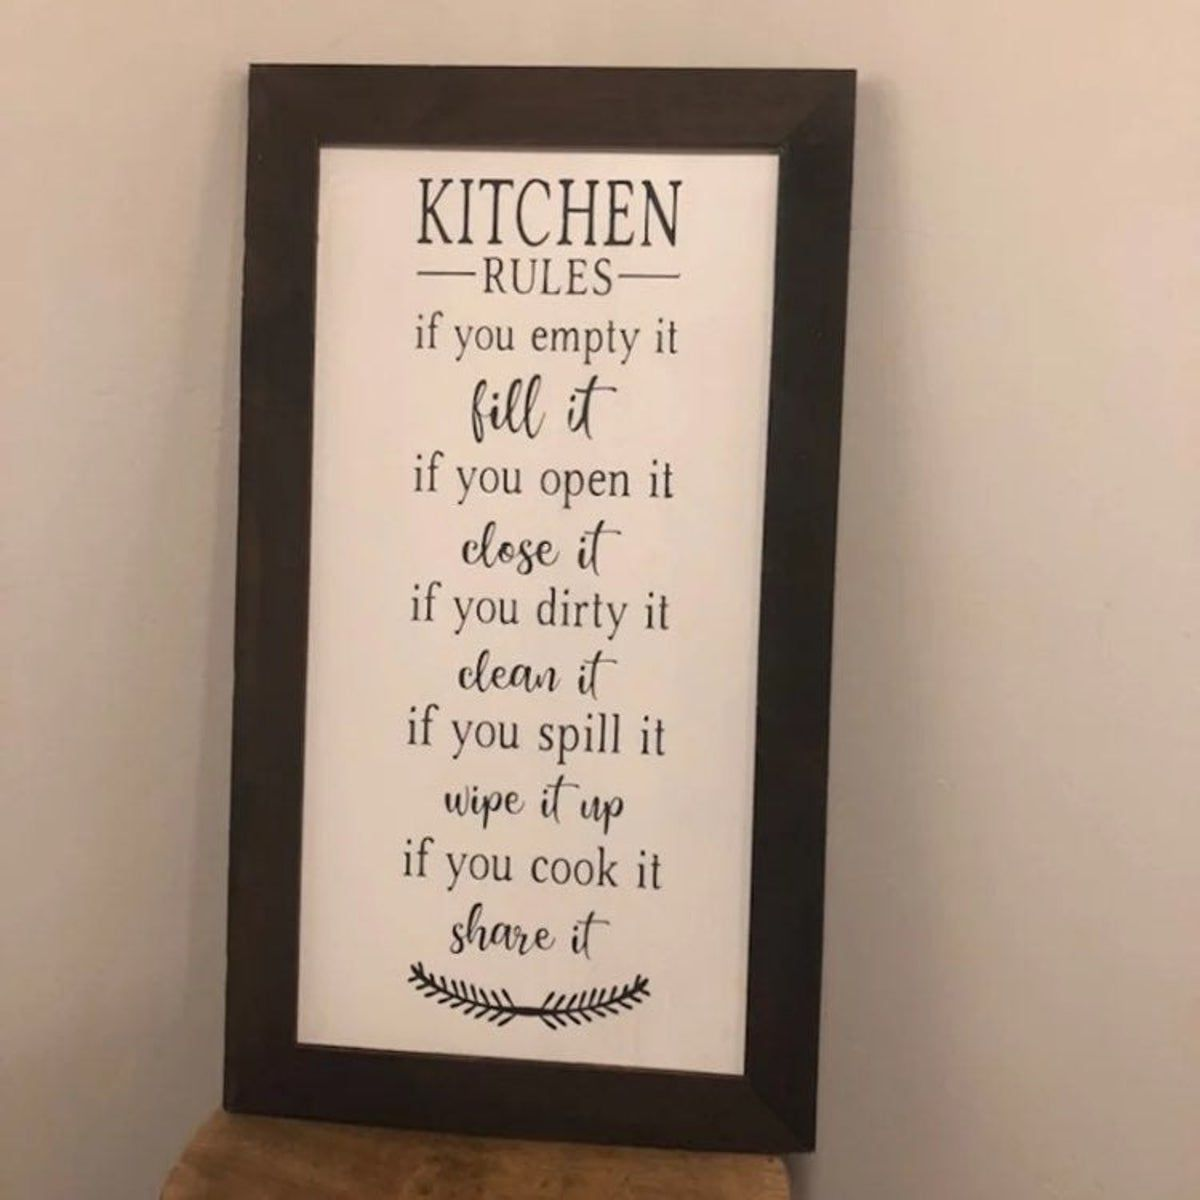 Kitchen Rules Farmhouse Wood Sign #kitchenrules Kitchen Rules Farmhouse Wood Sign #kitchenrules